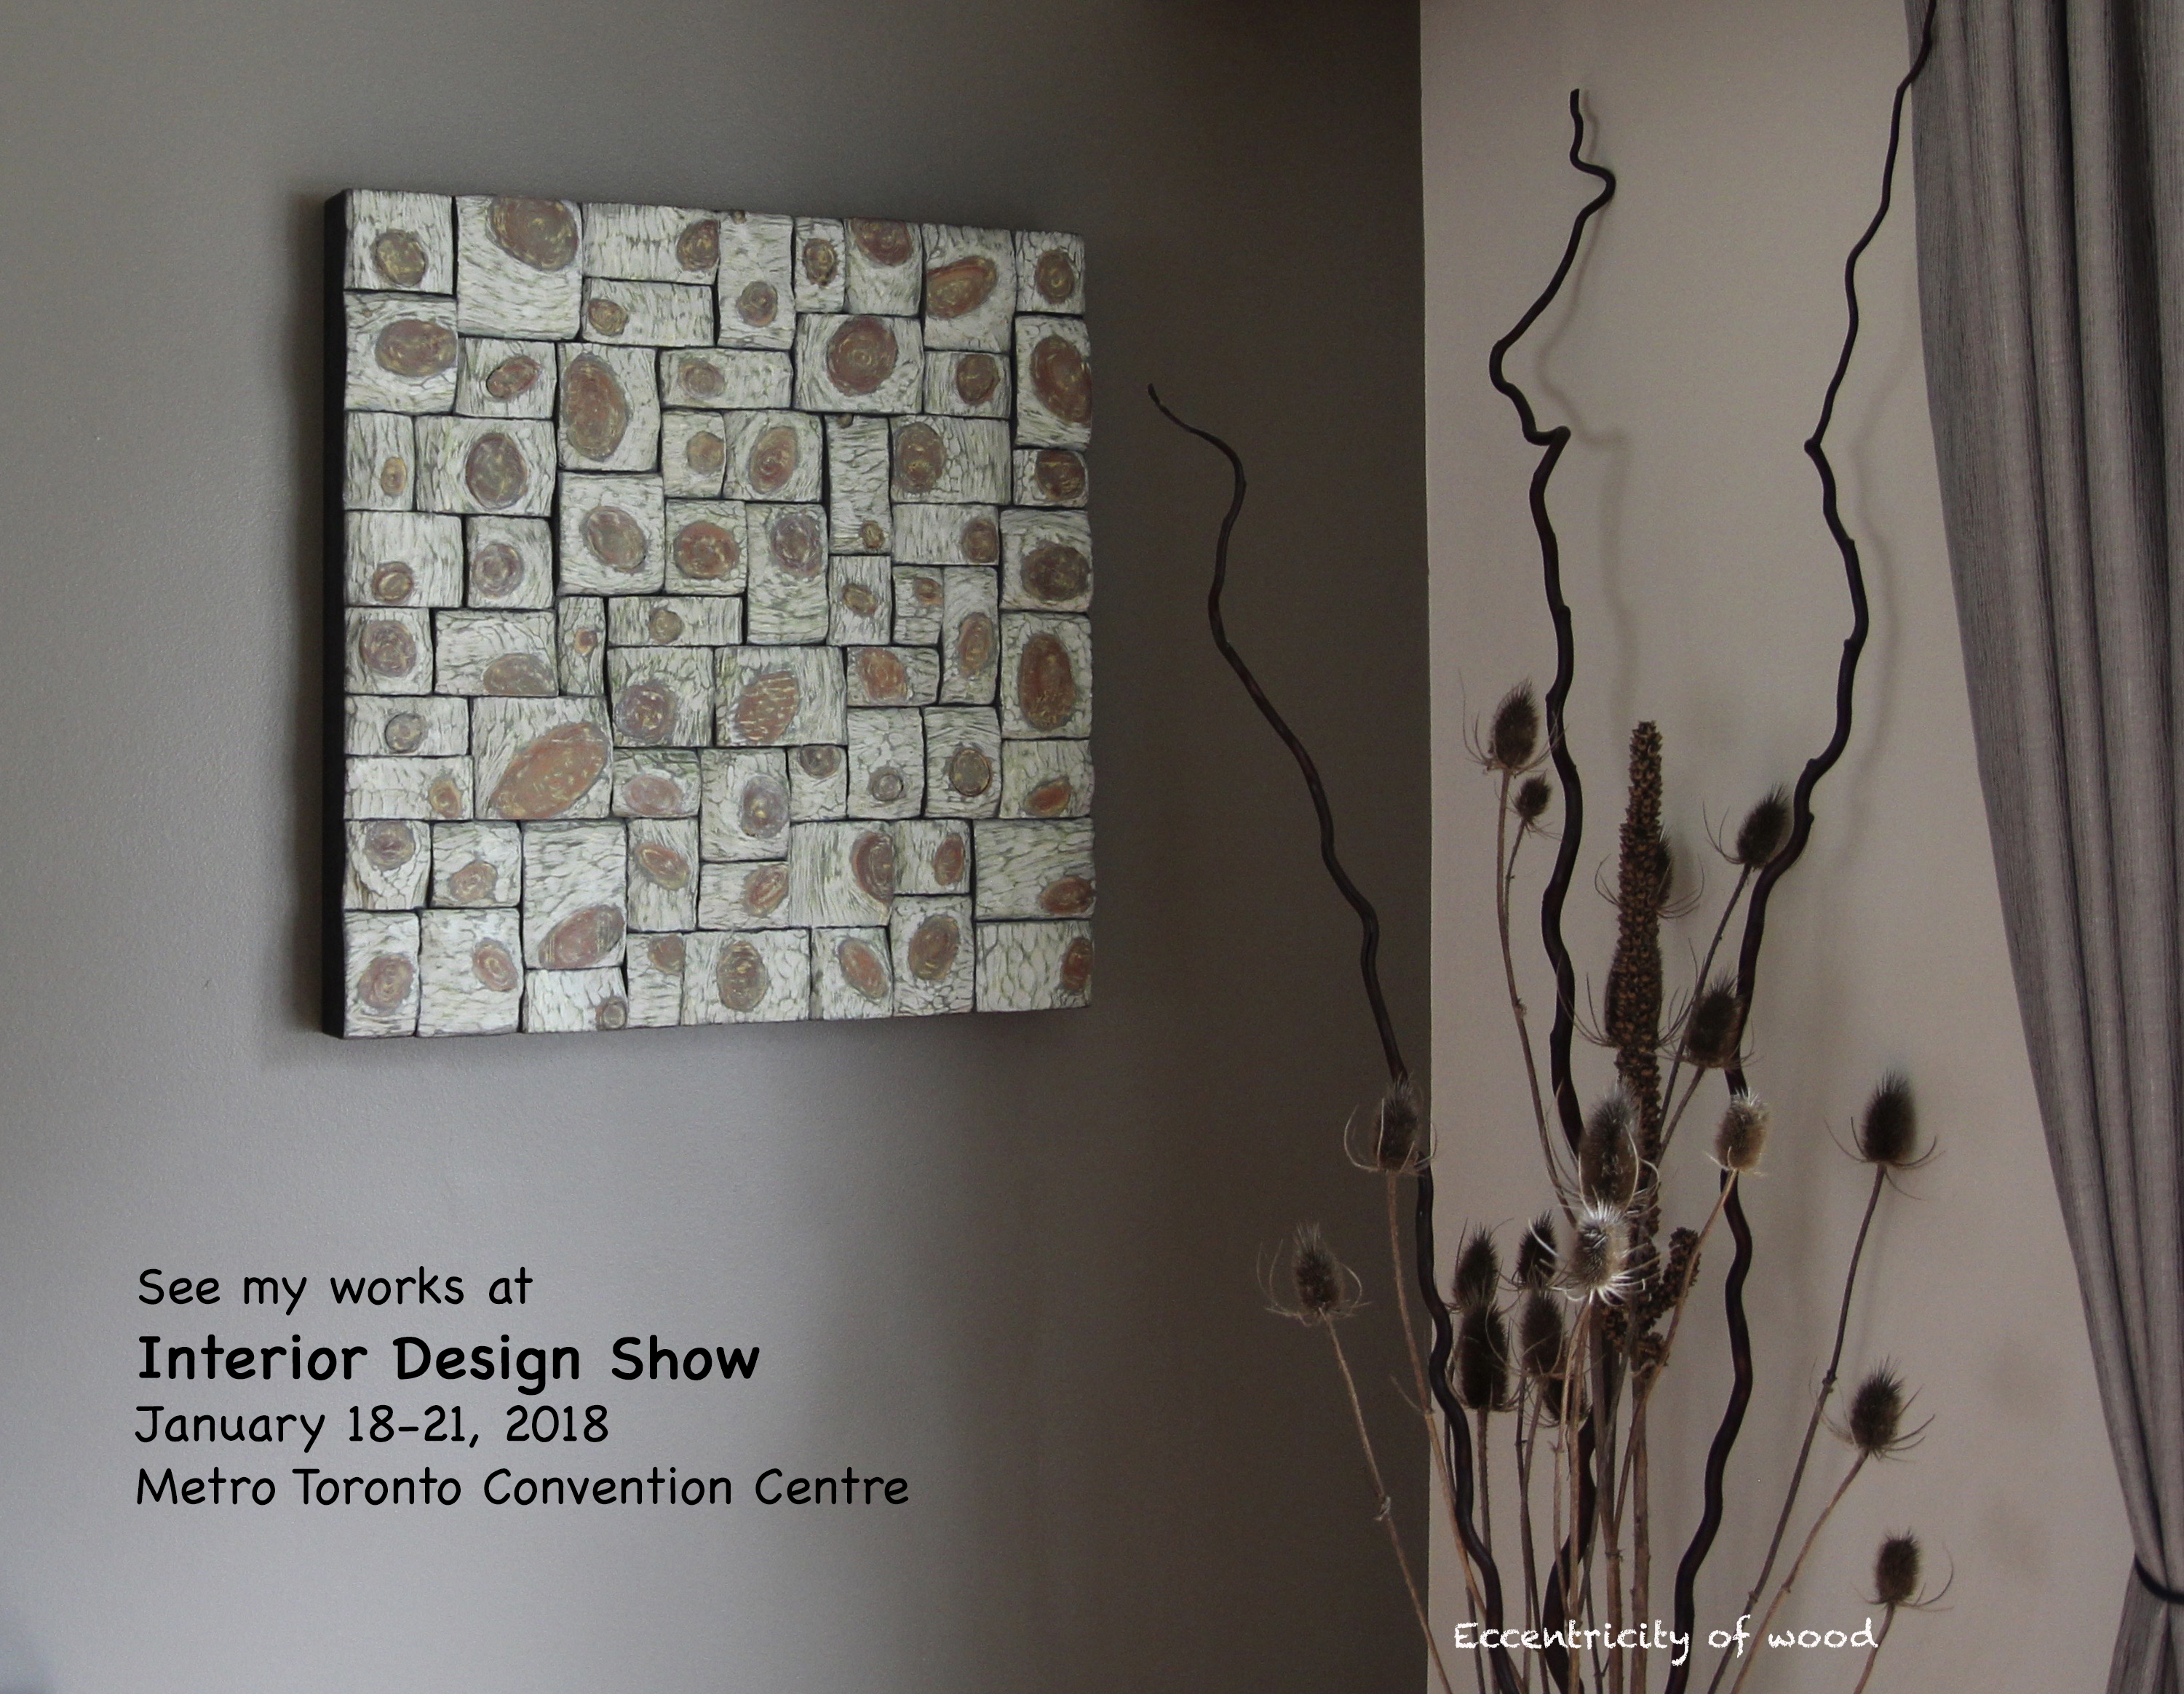 IDS Toronto, Interior Design Toronto, Home Decor, Wall Hanging Sculpture,  Wood Interior